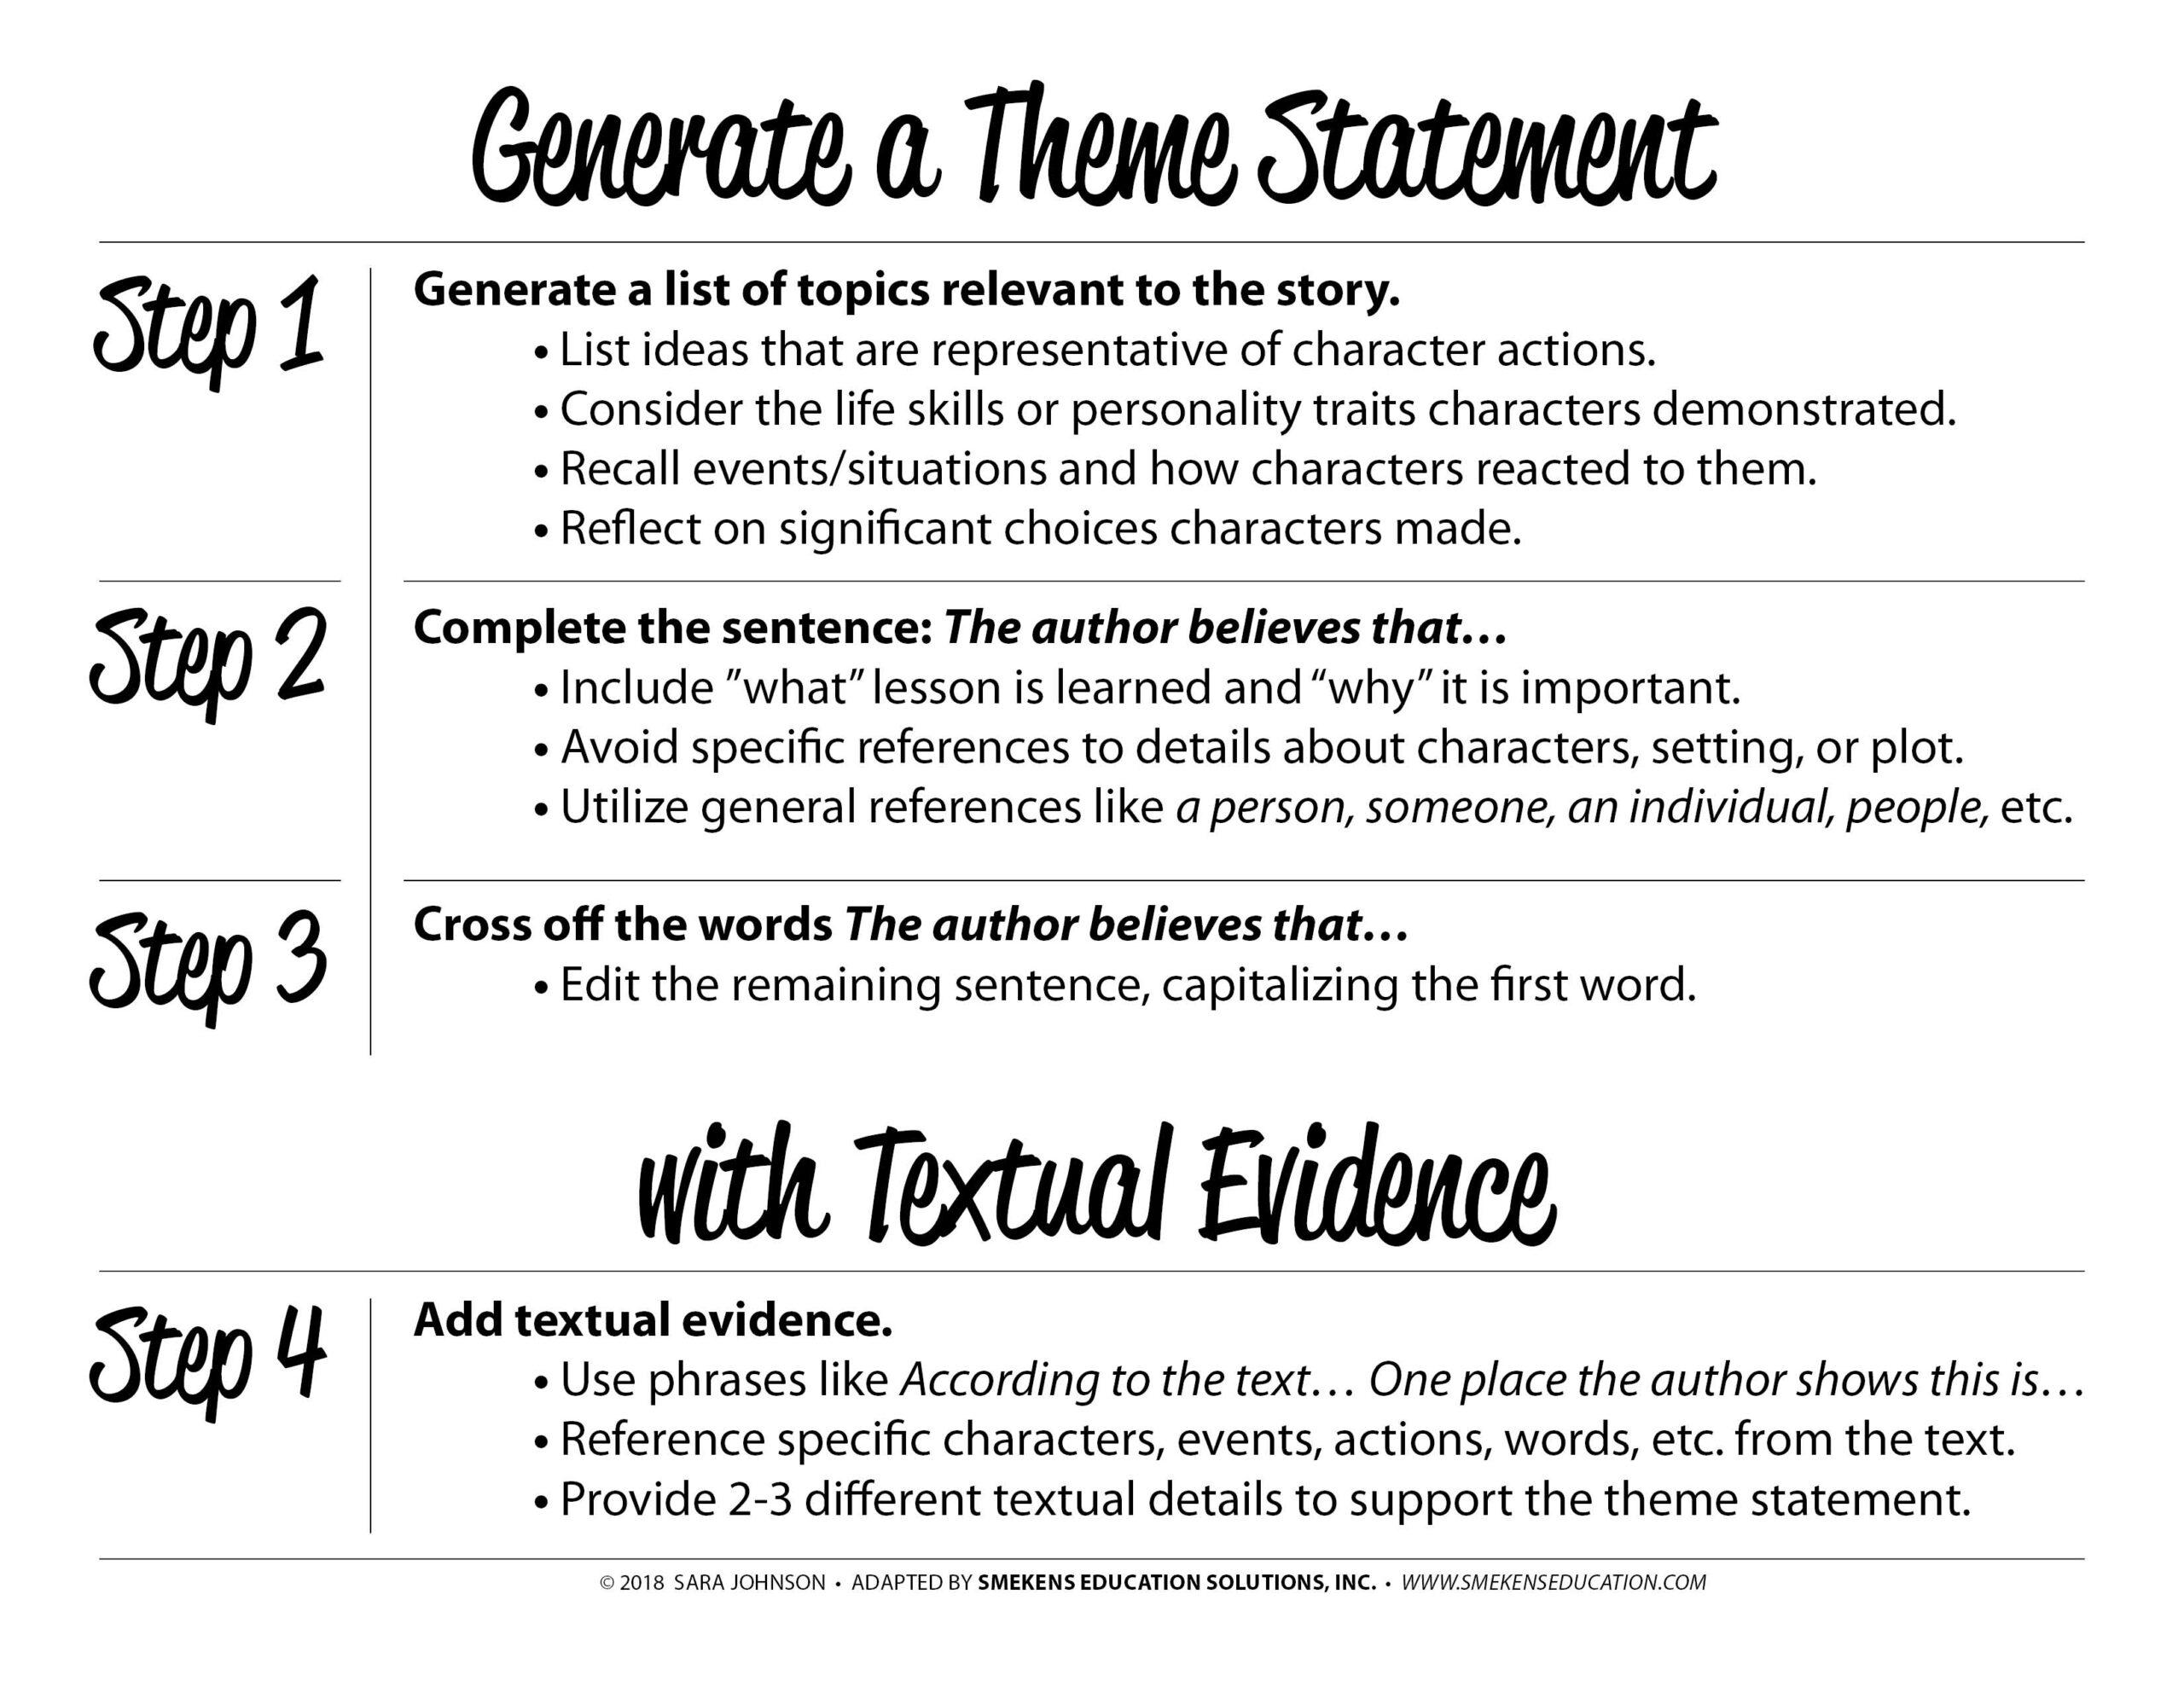 Generate a Theme Downloadable Resource